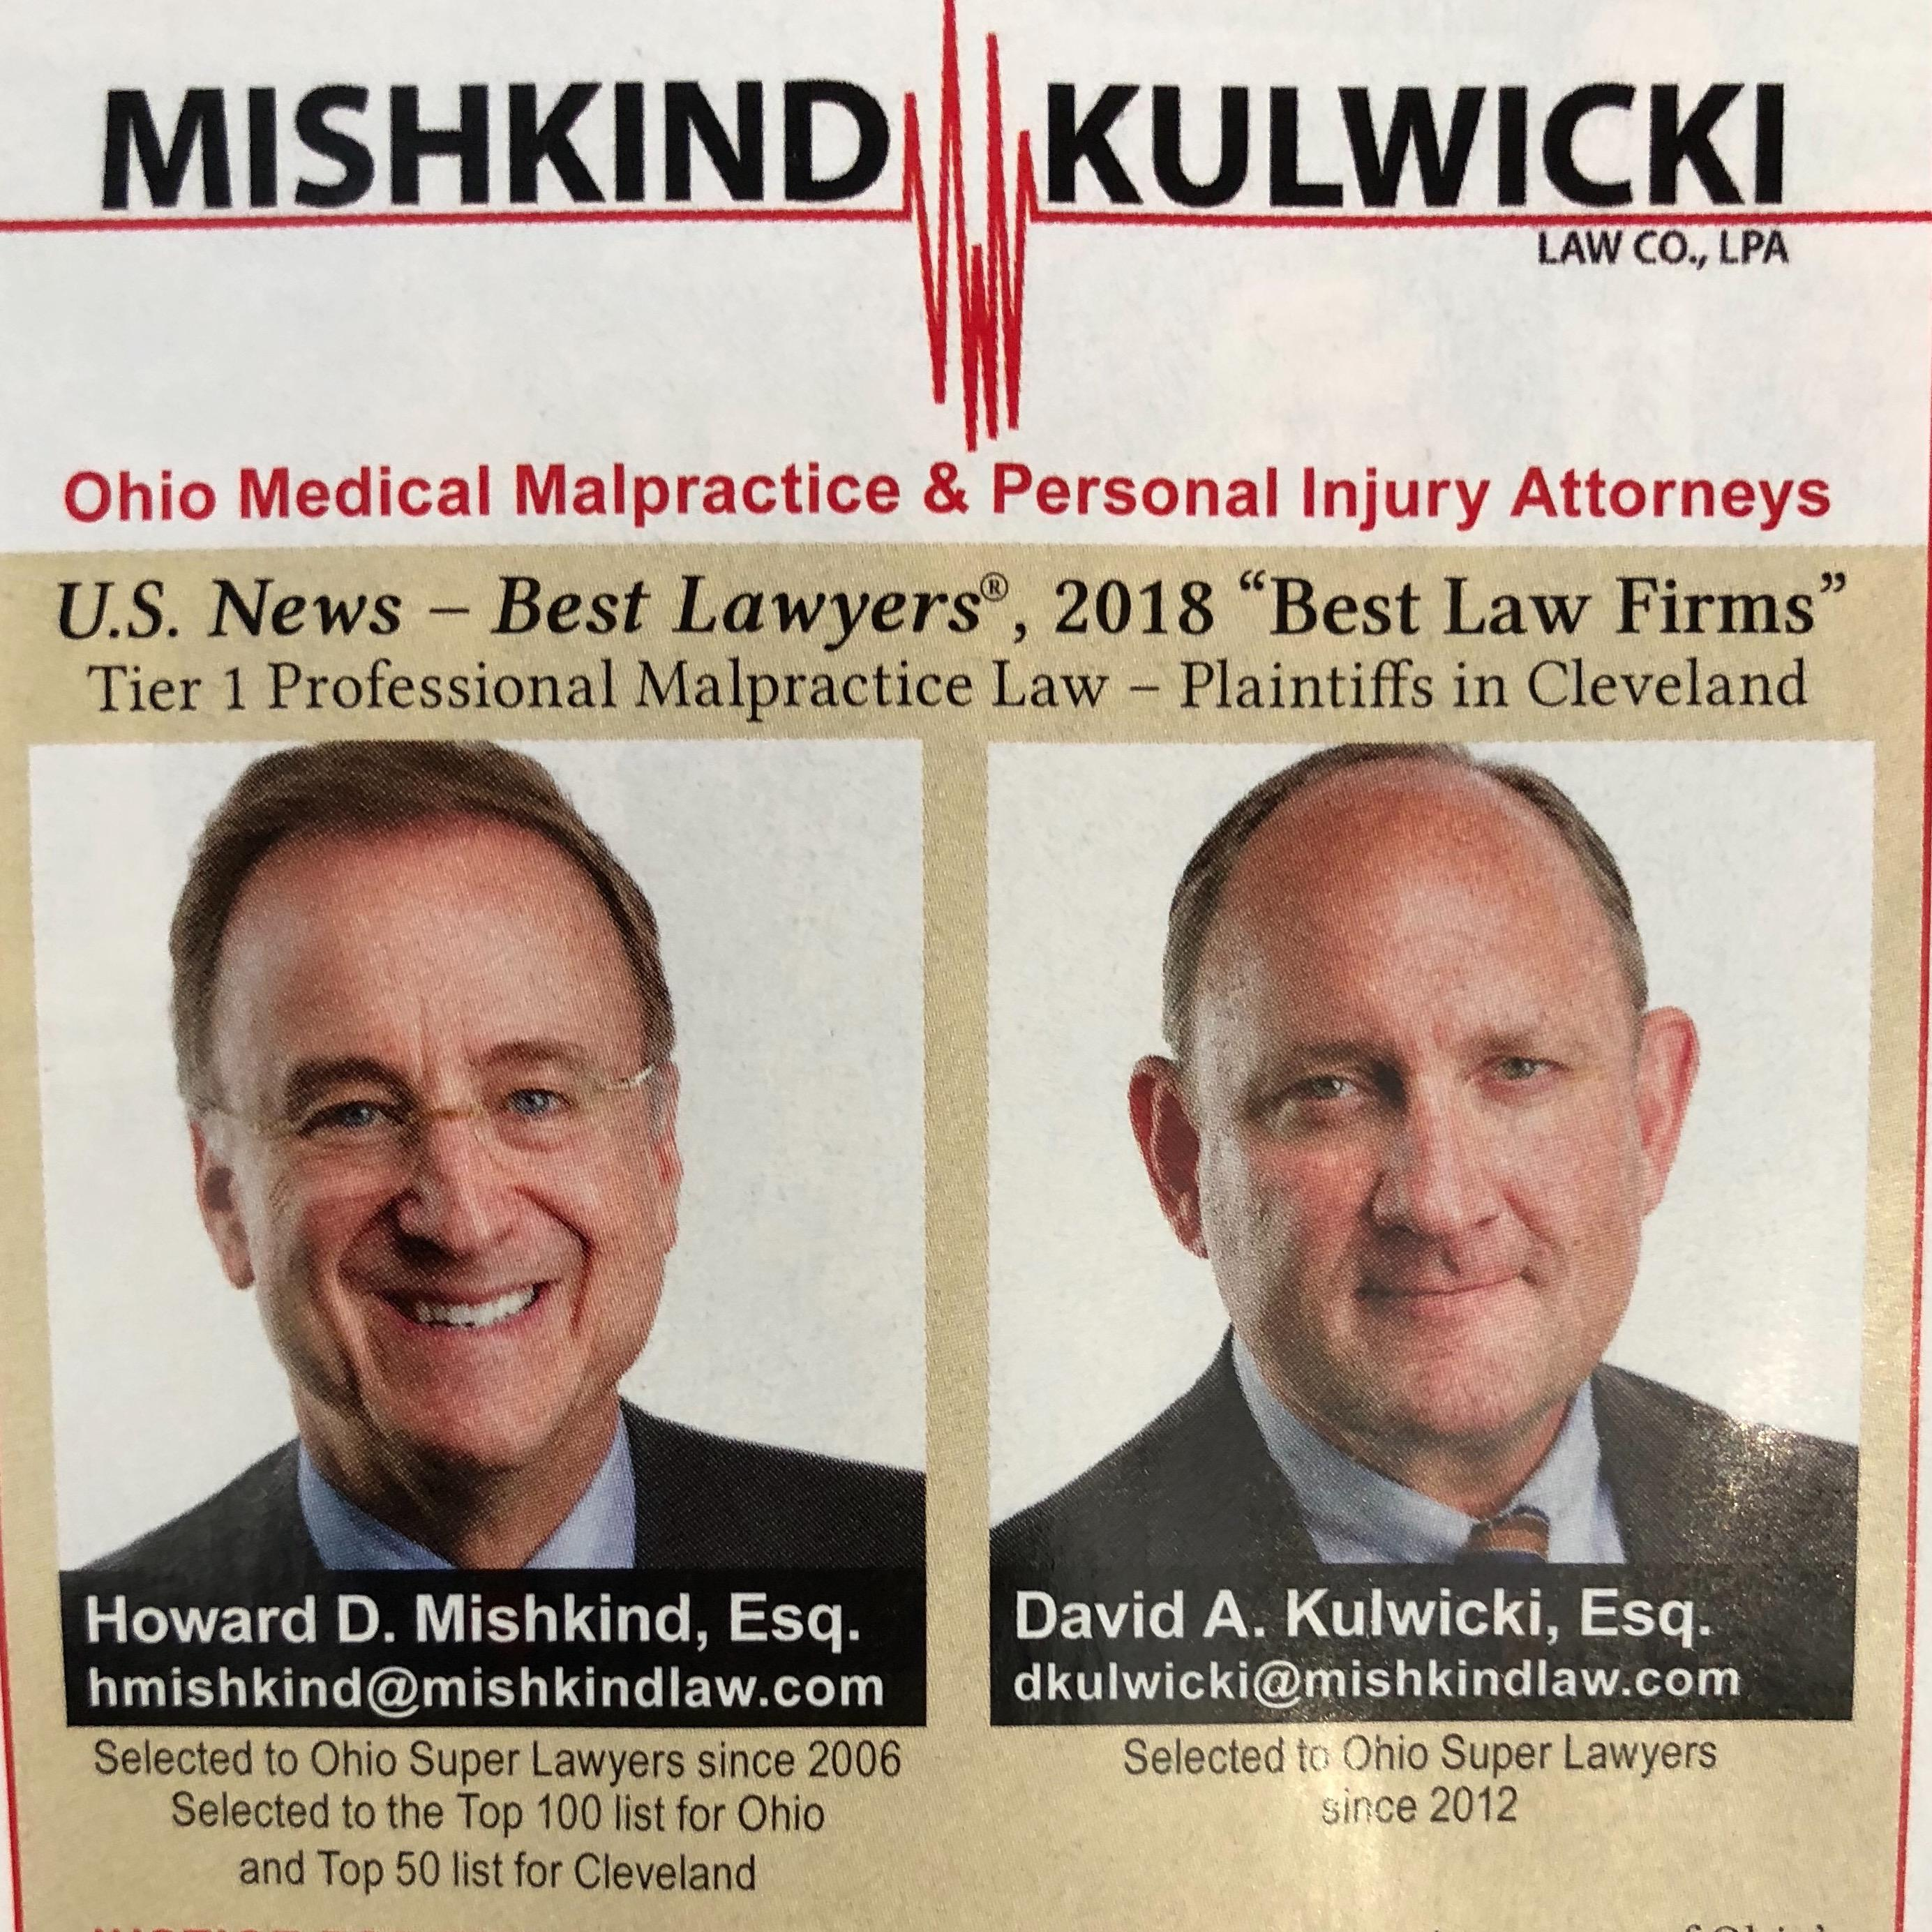 Mishkind  Kulwicki Law Co., L.P.A.